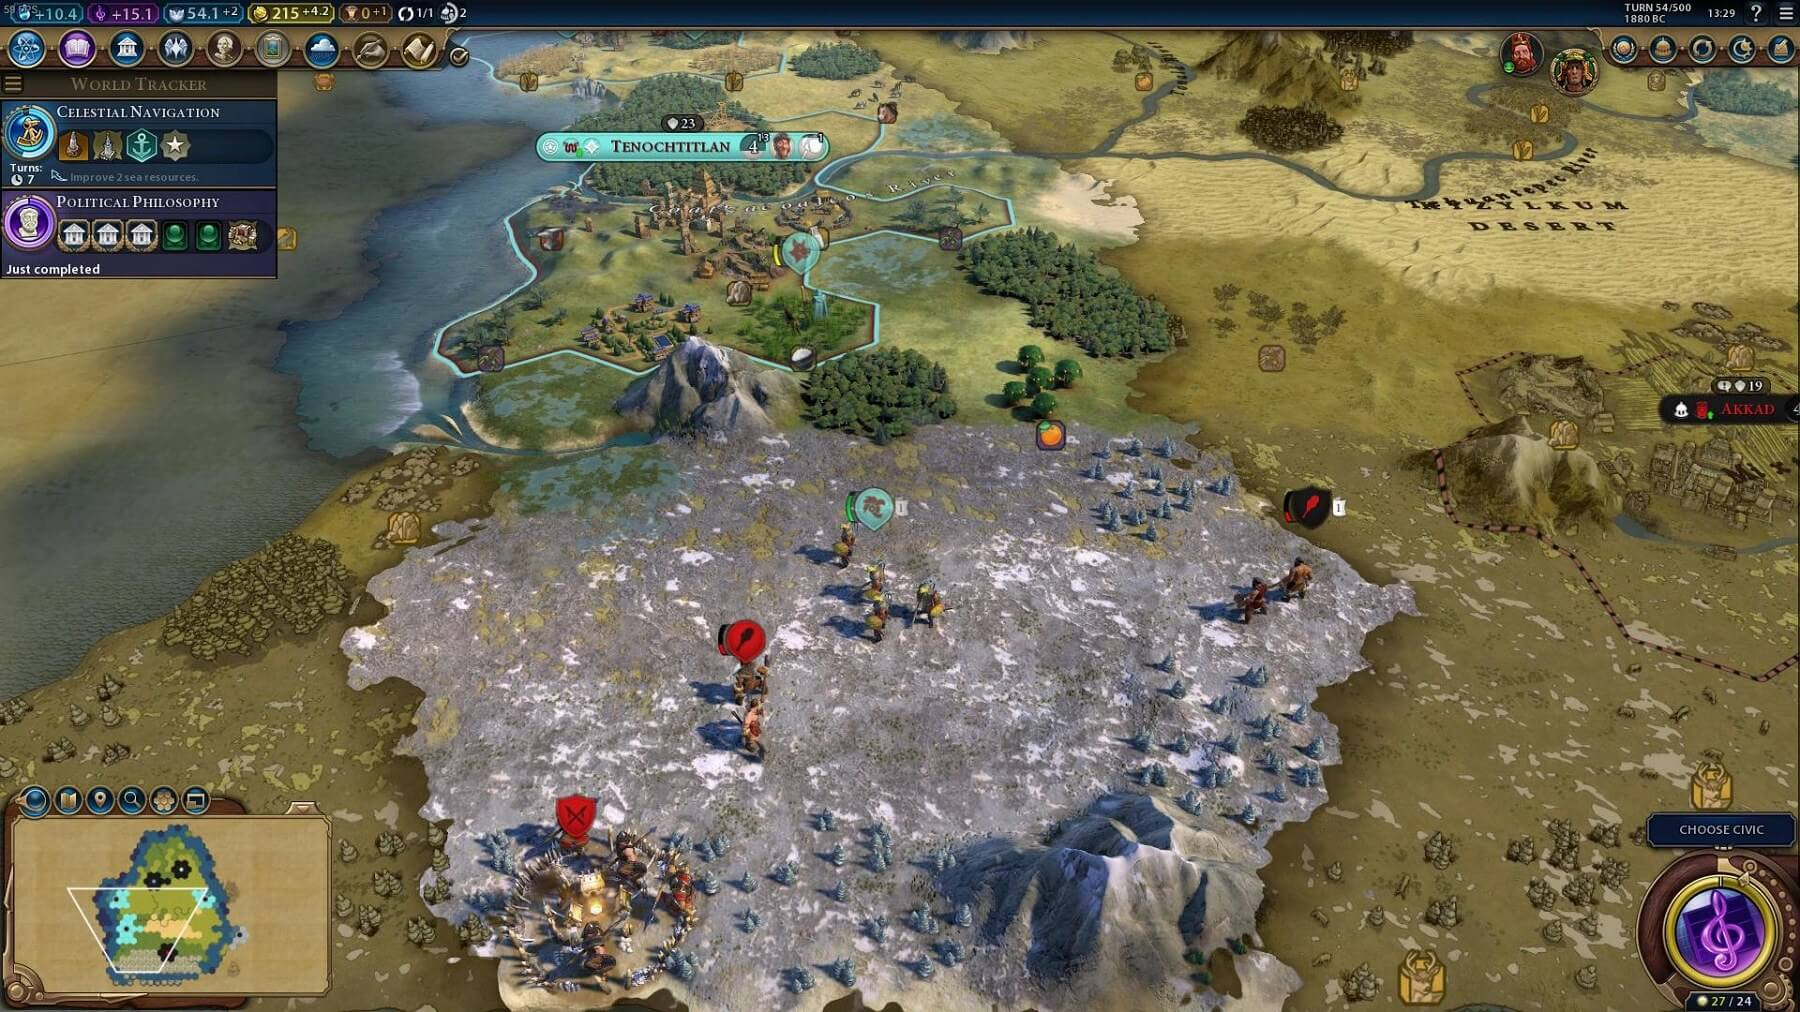 This Civilization VI mod makes the game look more like Civ V